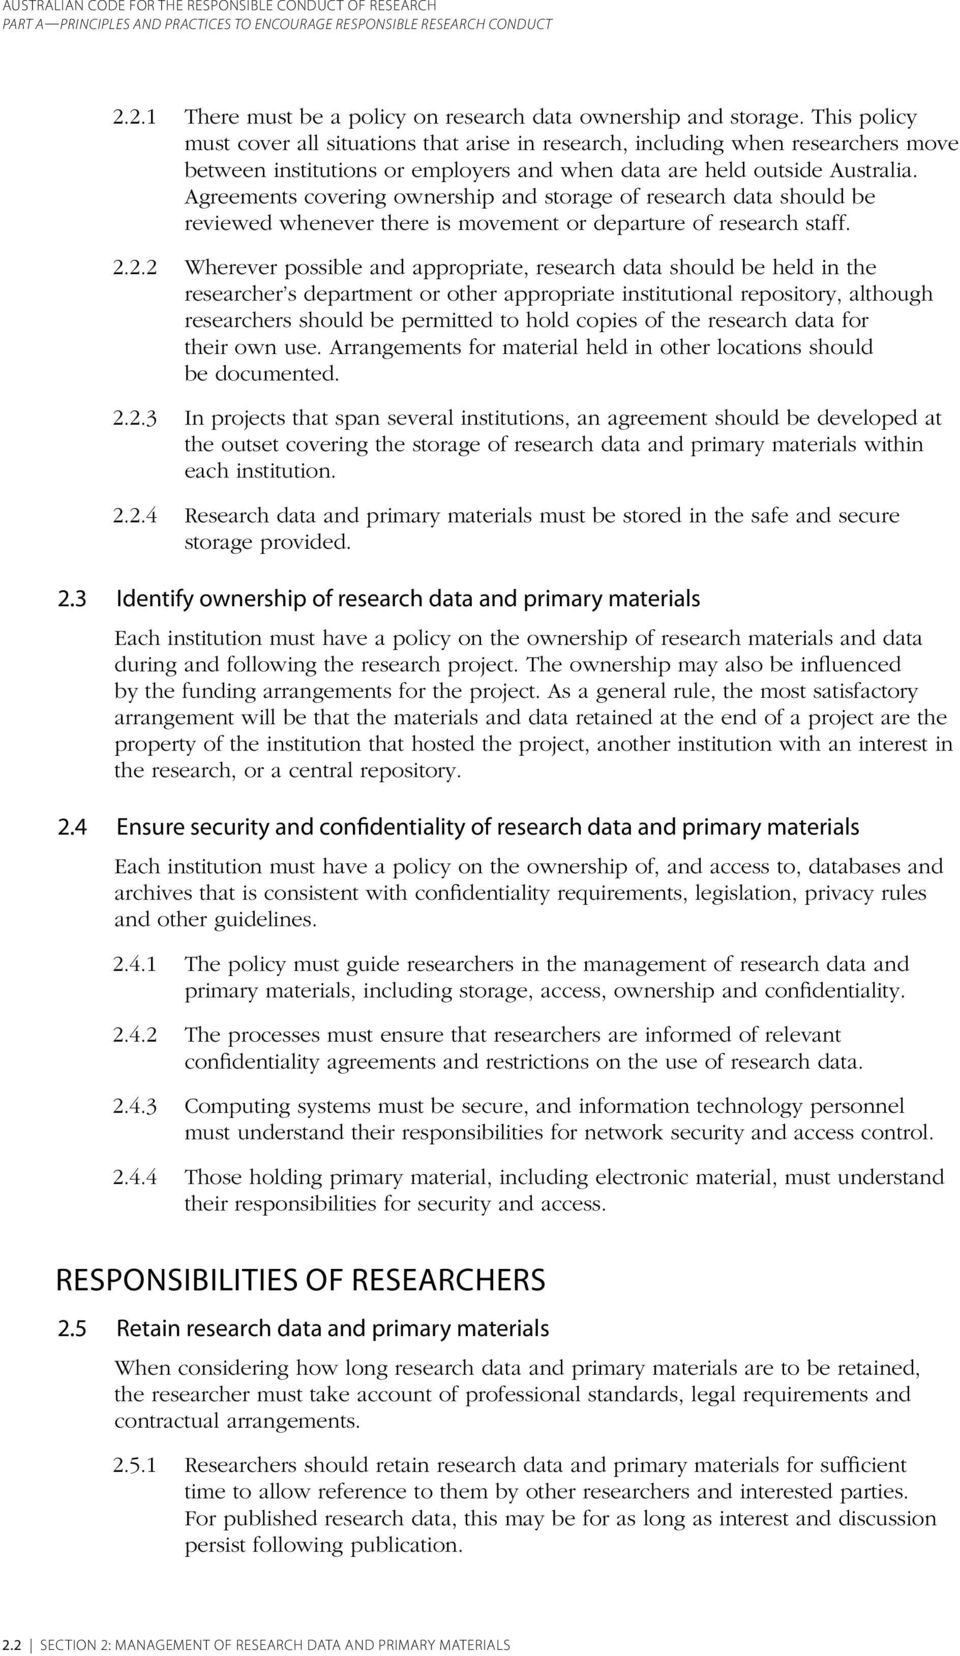 Agreements covering ownership and storage of research data should be reviewed whenever there is movement or departure of research staff. 2.